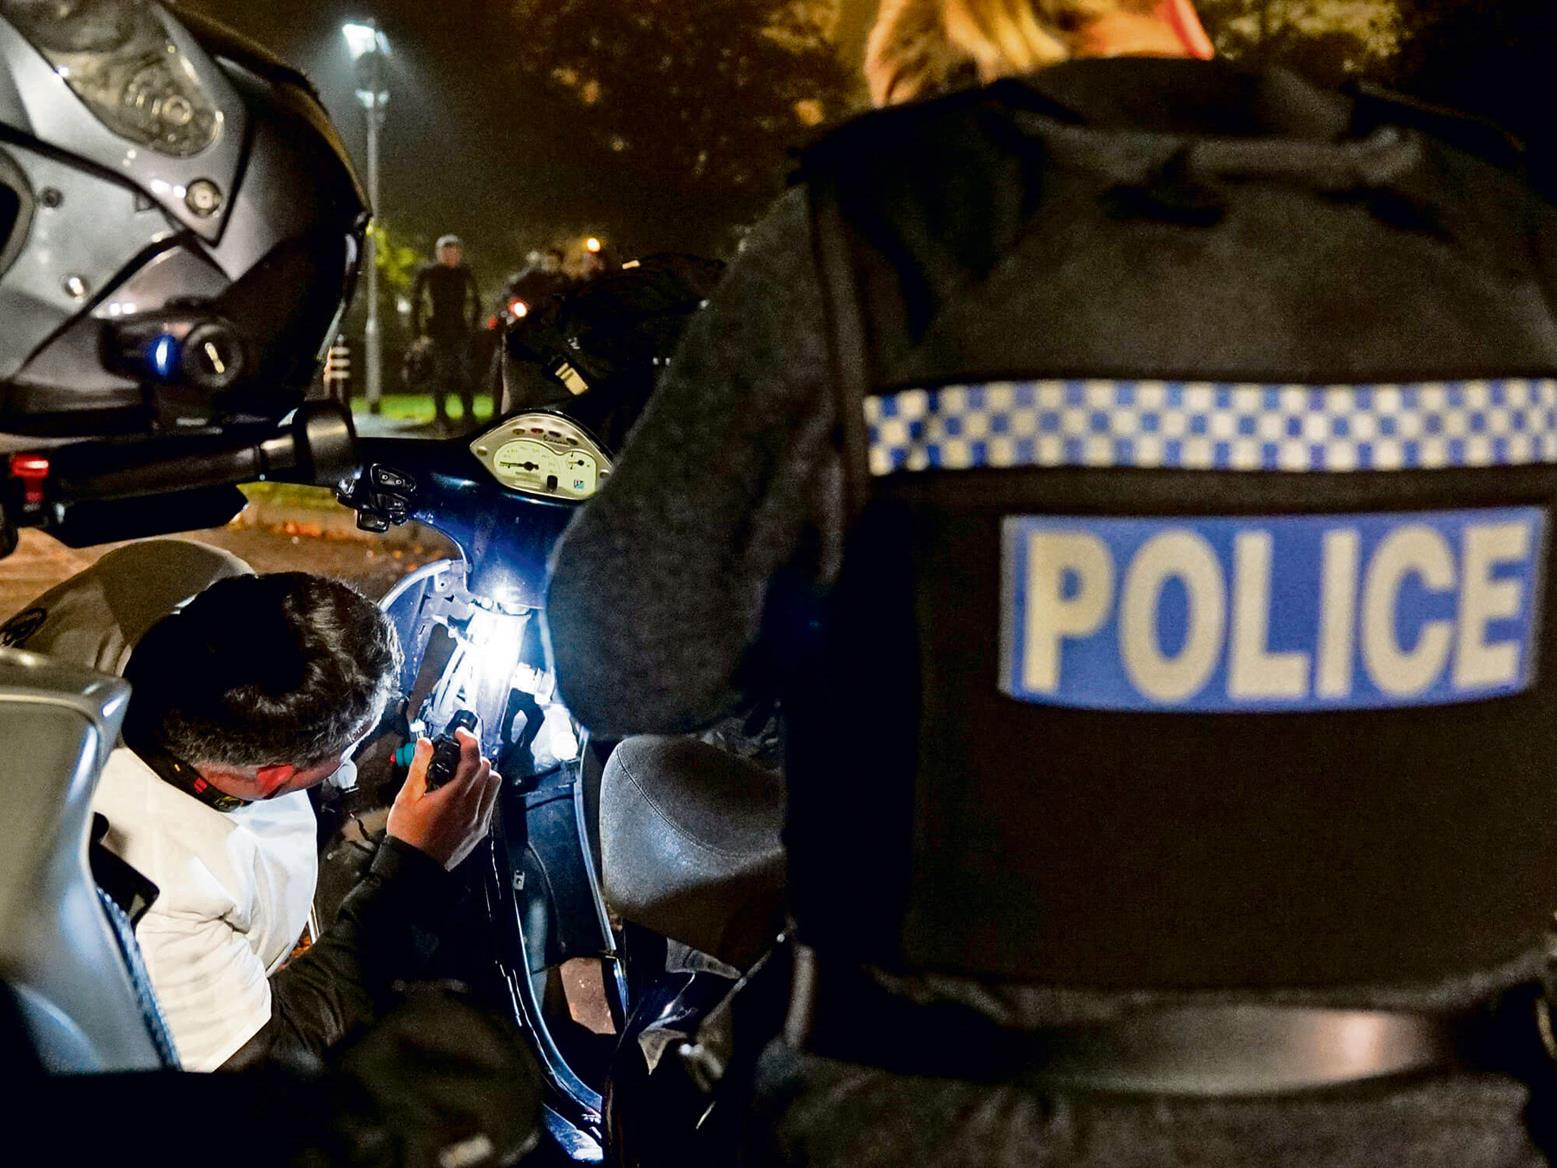 Police work with anti-theft group to recover stolen motorbike